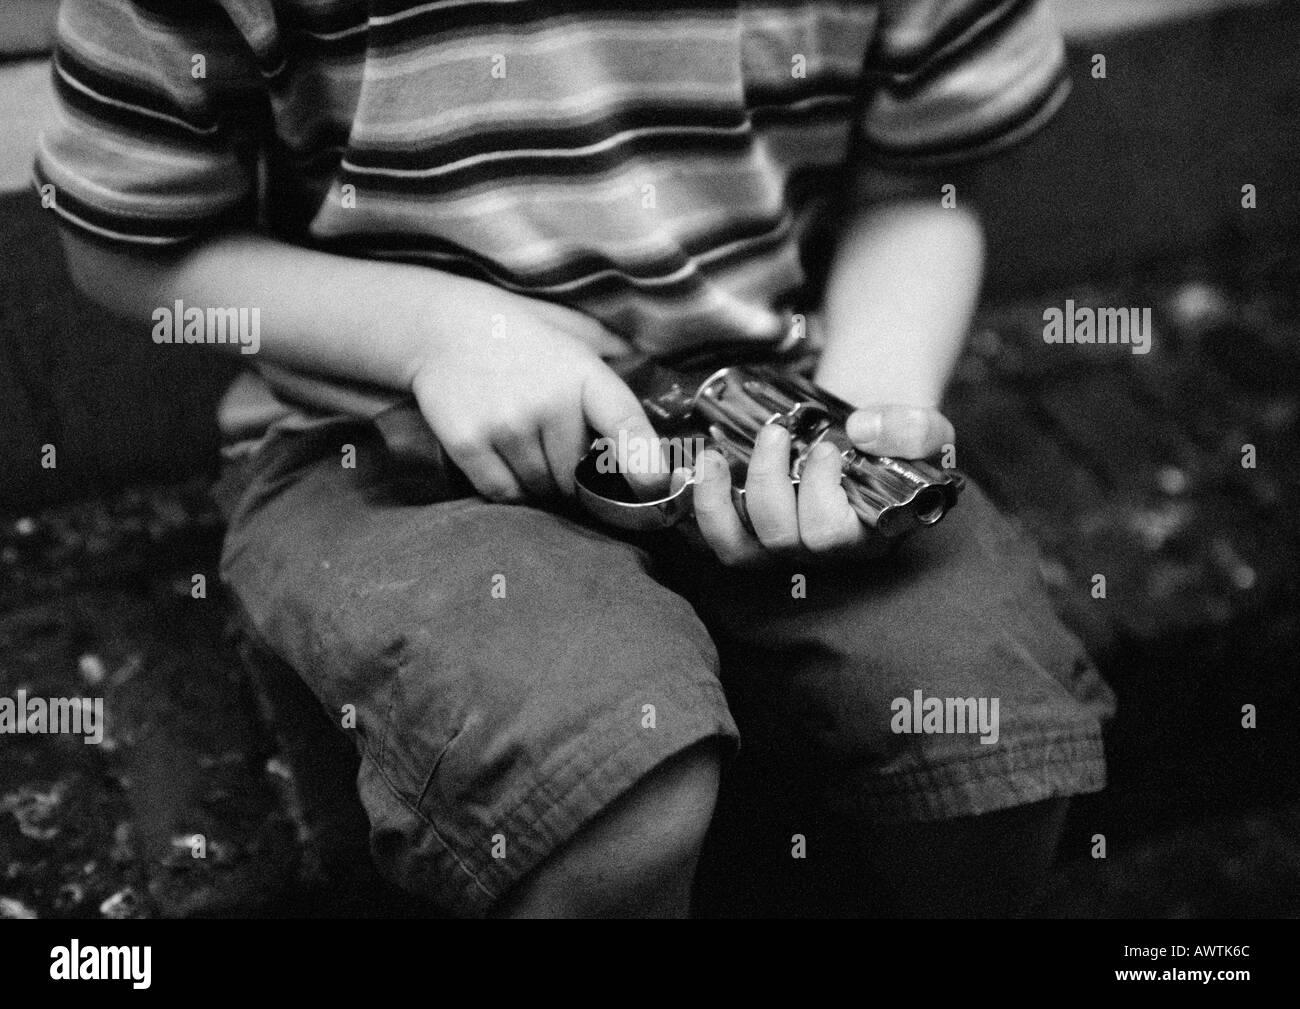 Child holding gun, mid-section, b&w - Stock Image